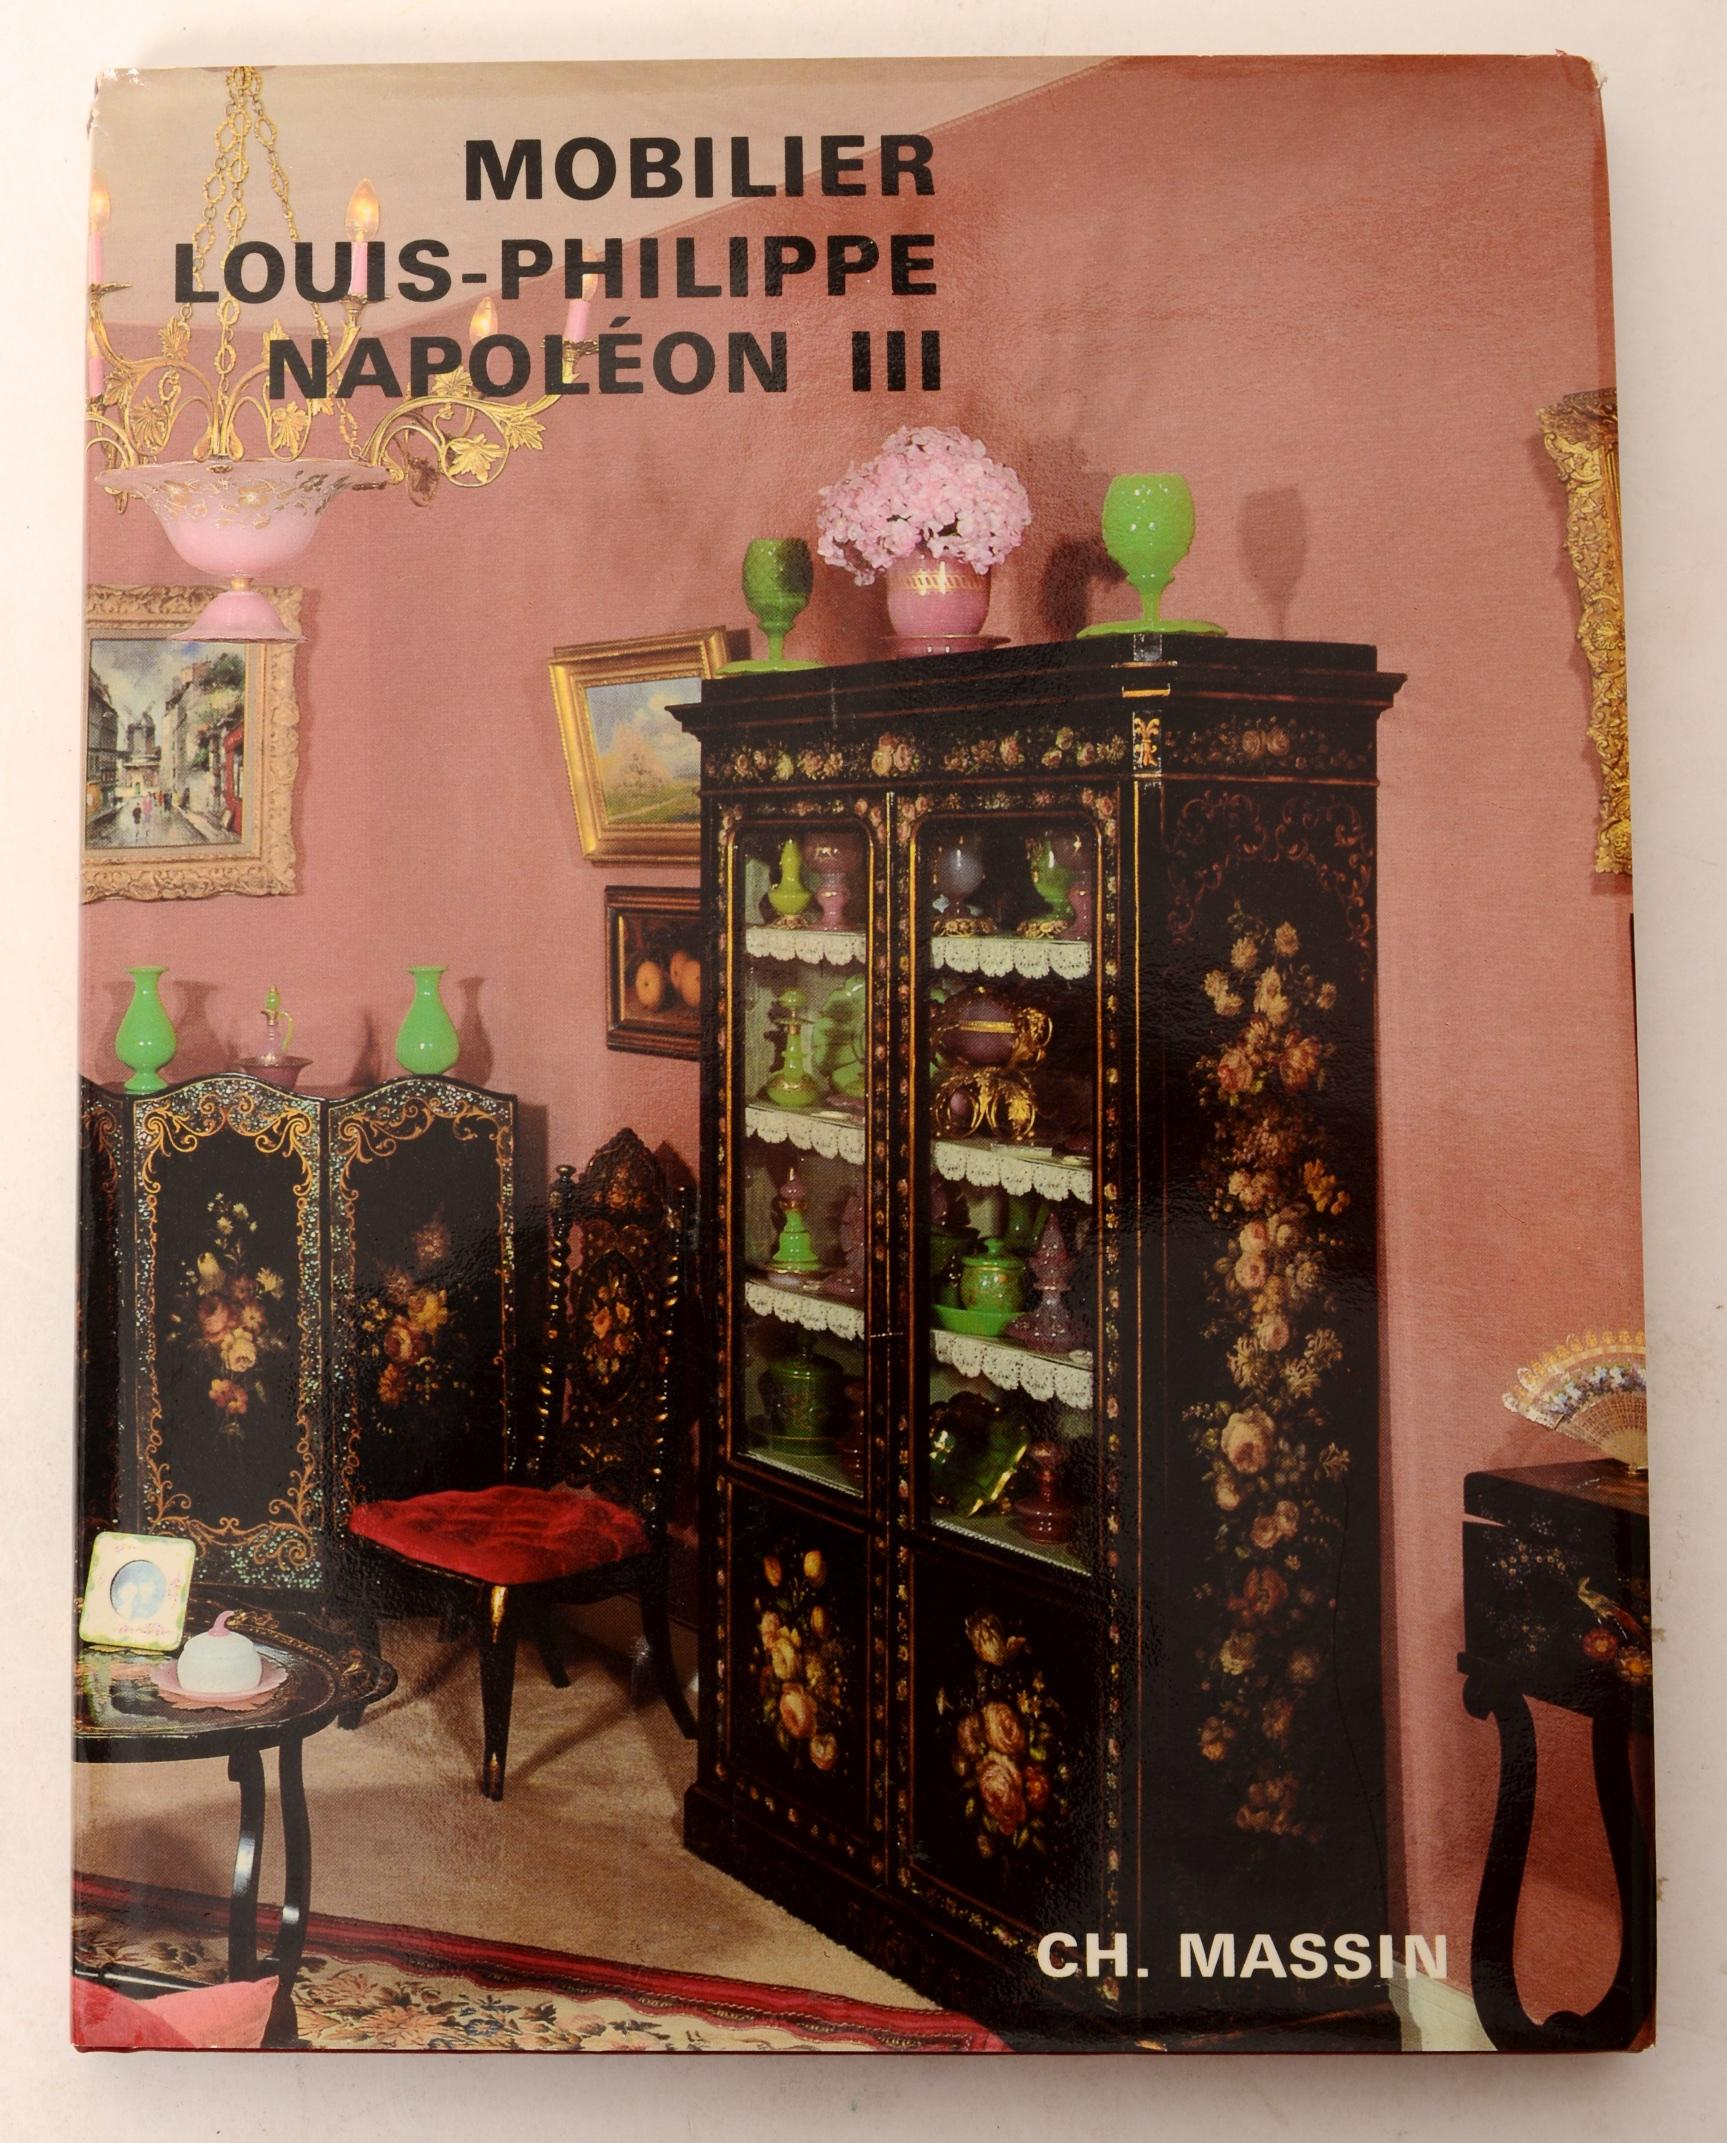 Mobilier Louis-Philippe Napoleon III by Colette Lehmann, First Edition